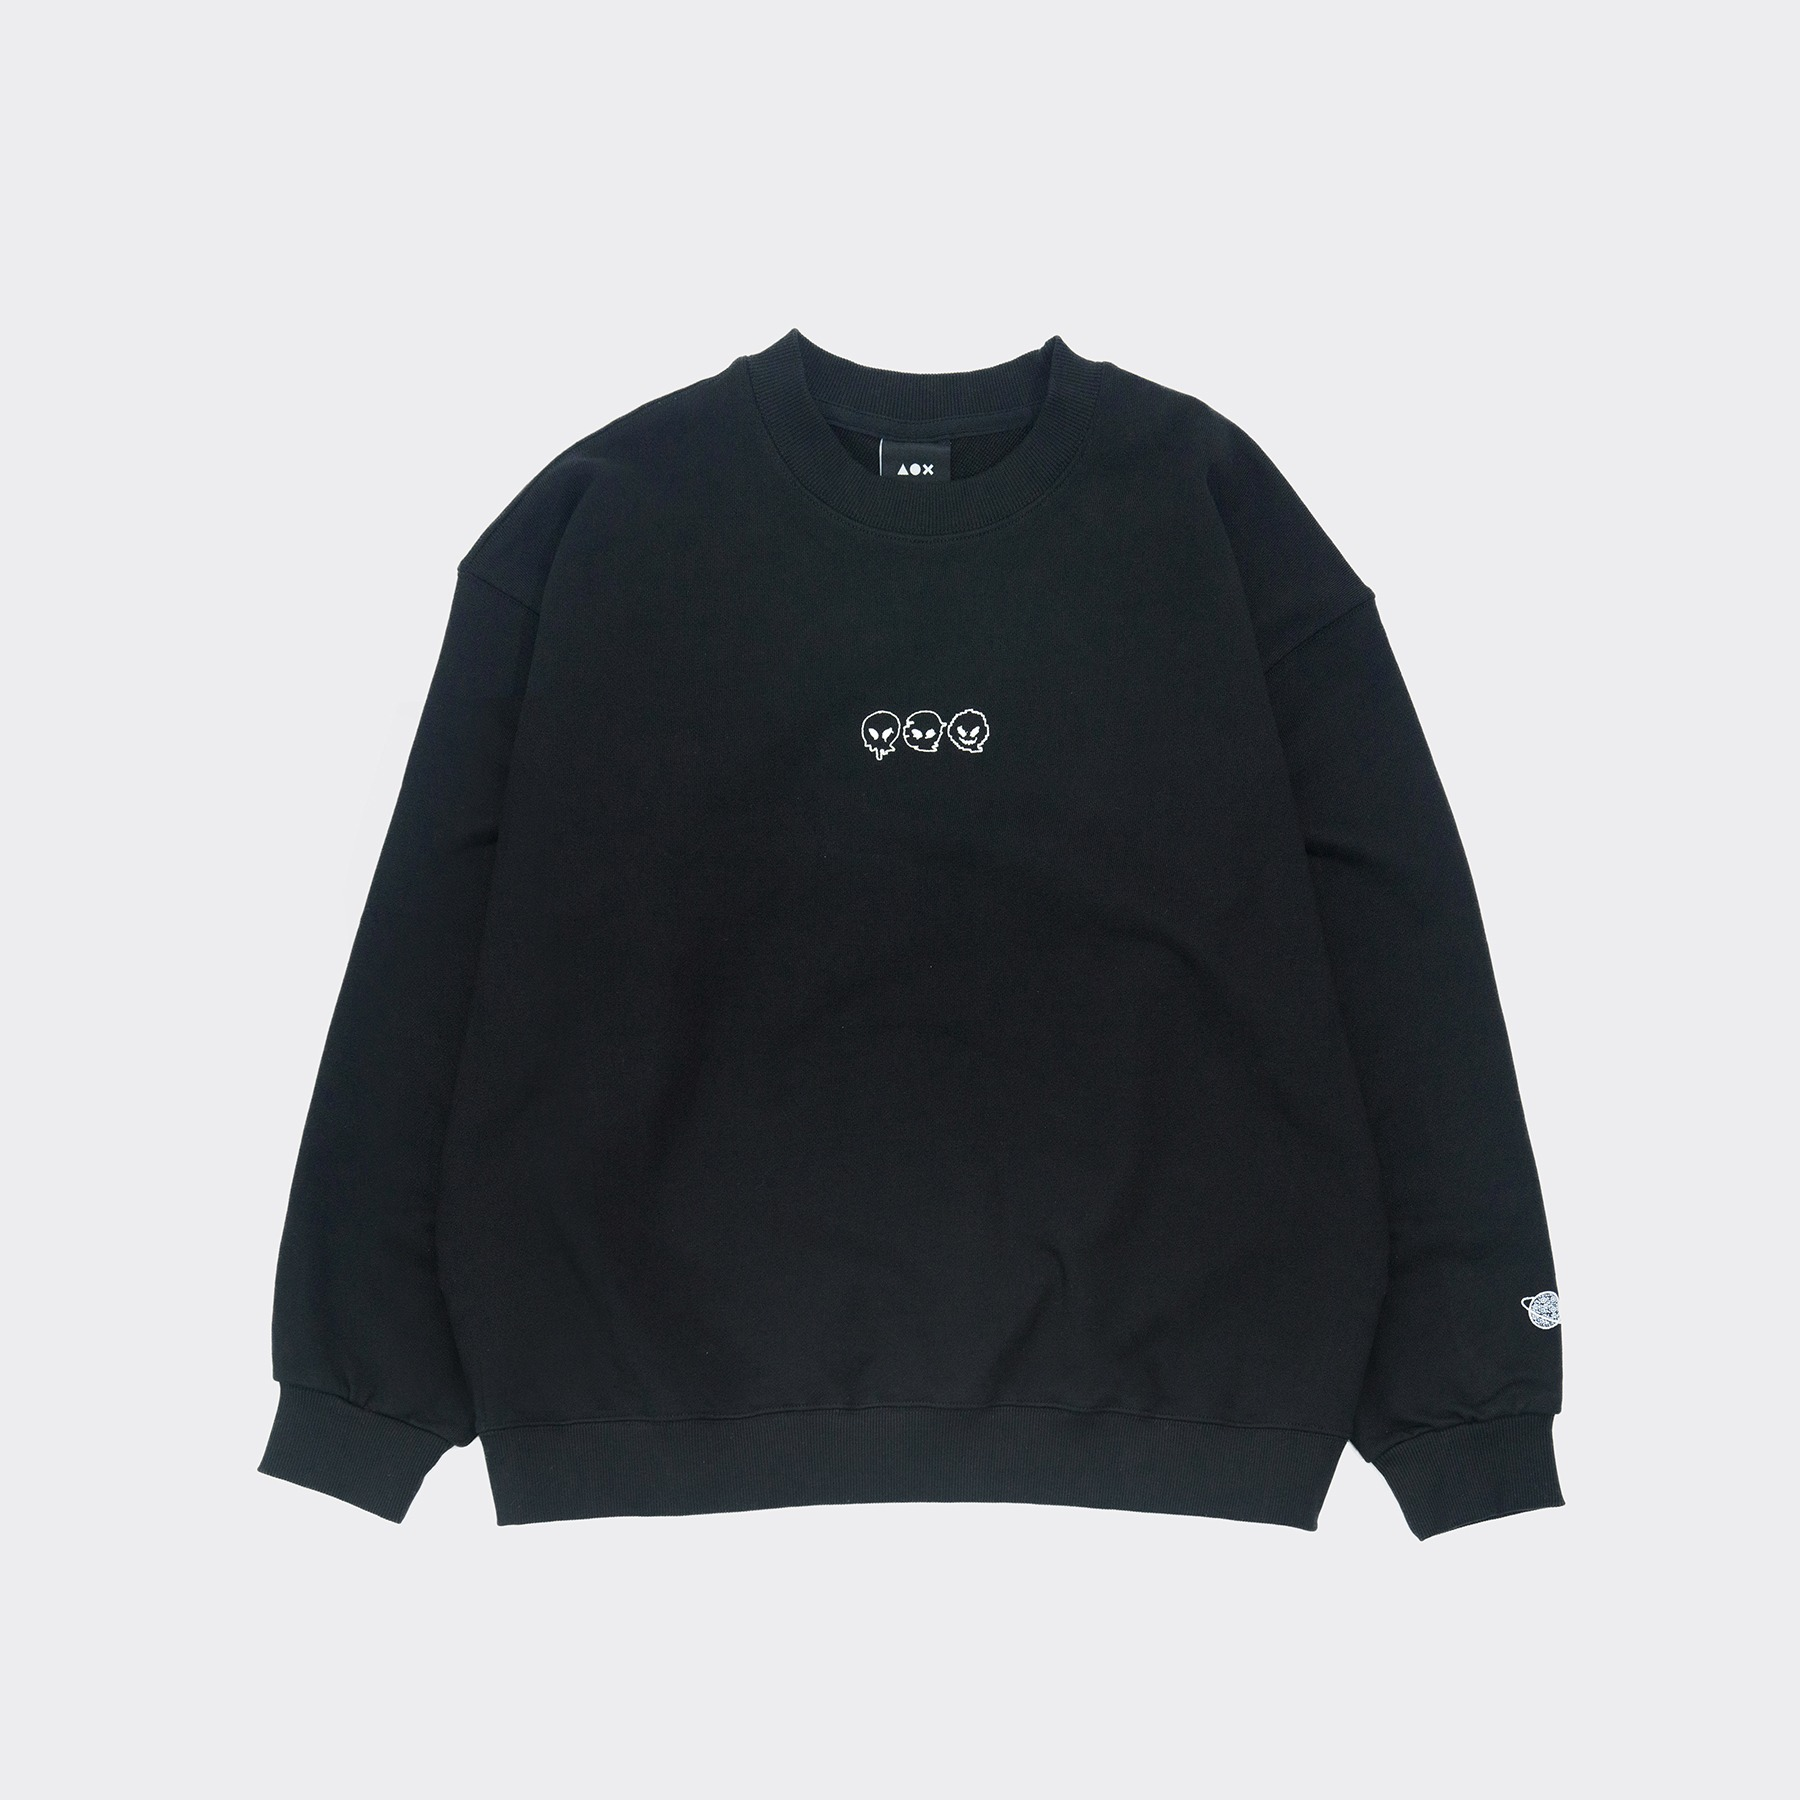 Signature3 sweatshirt(Oversize fit) Black